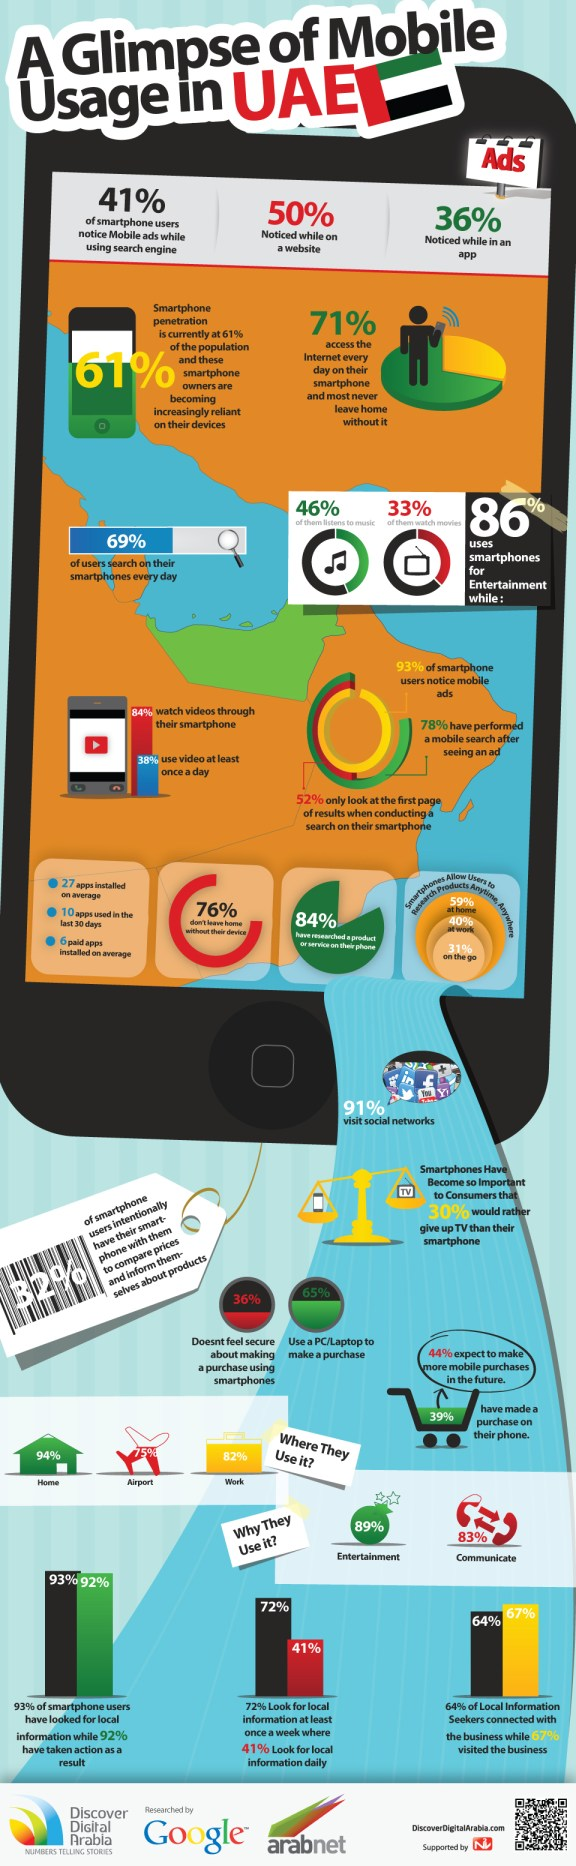 Mobile usage in UAE 2013